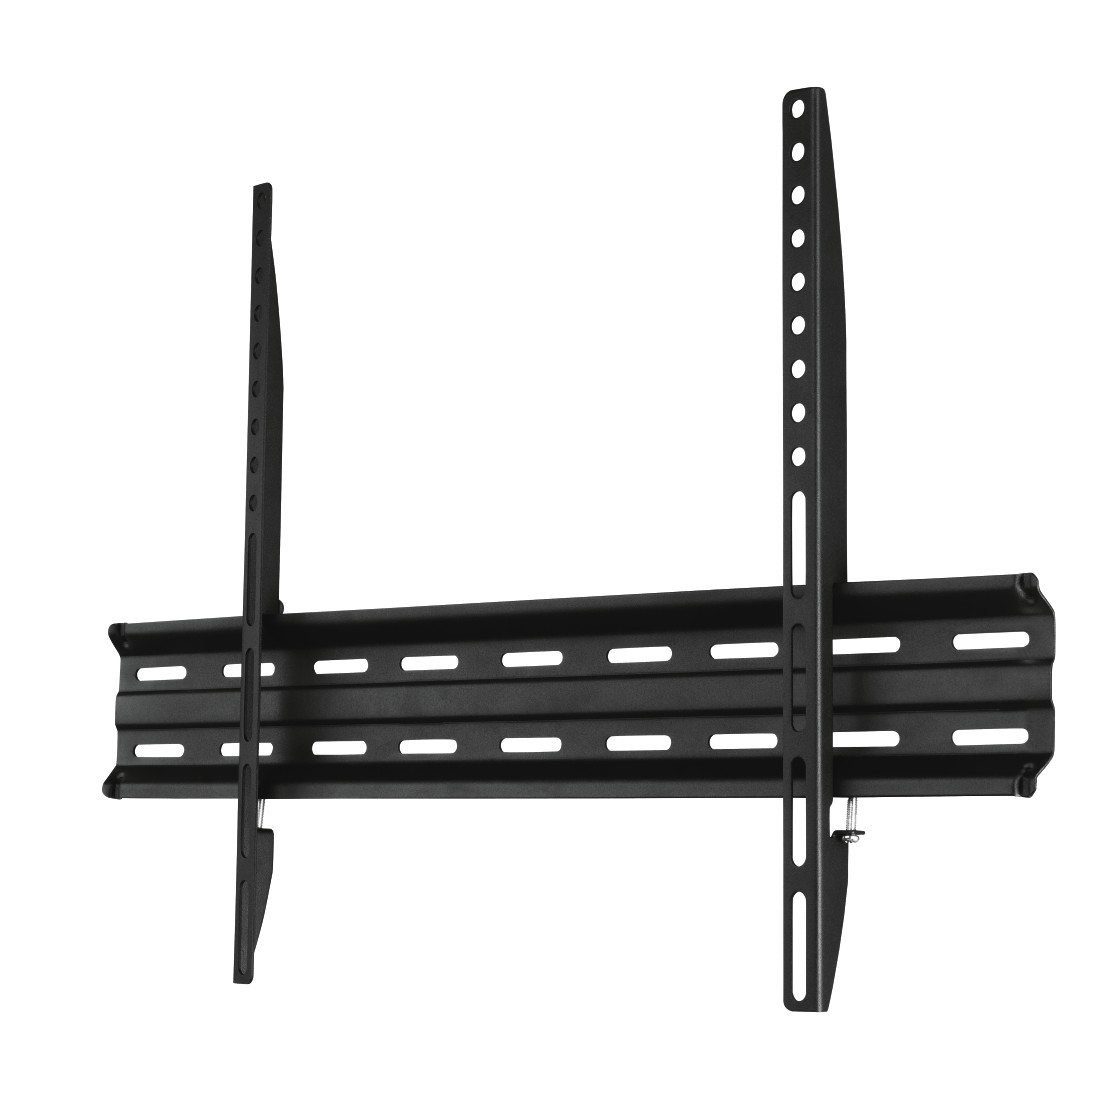 "Hama 00118107 TV mount 190.5 cm (75"") Black"